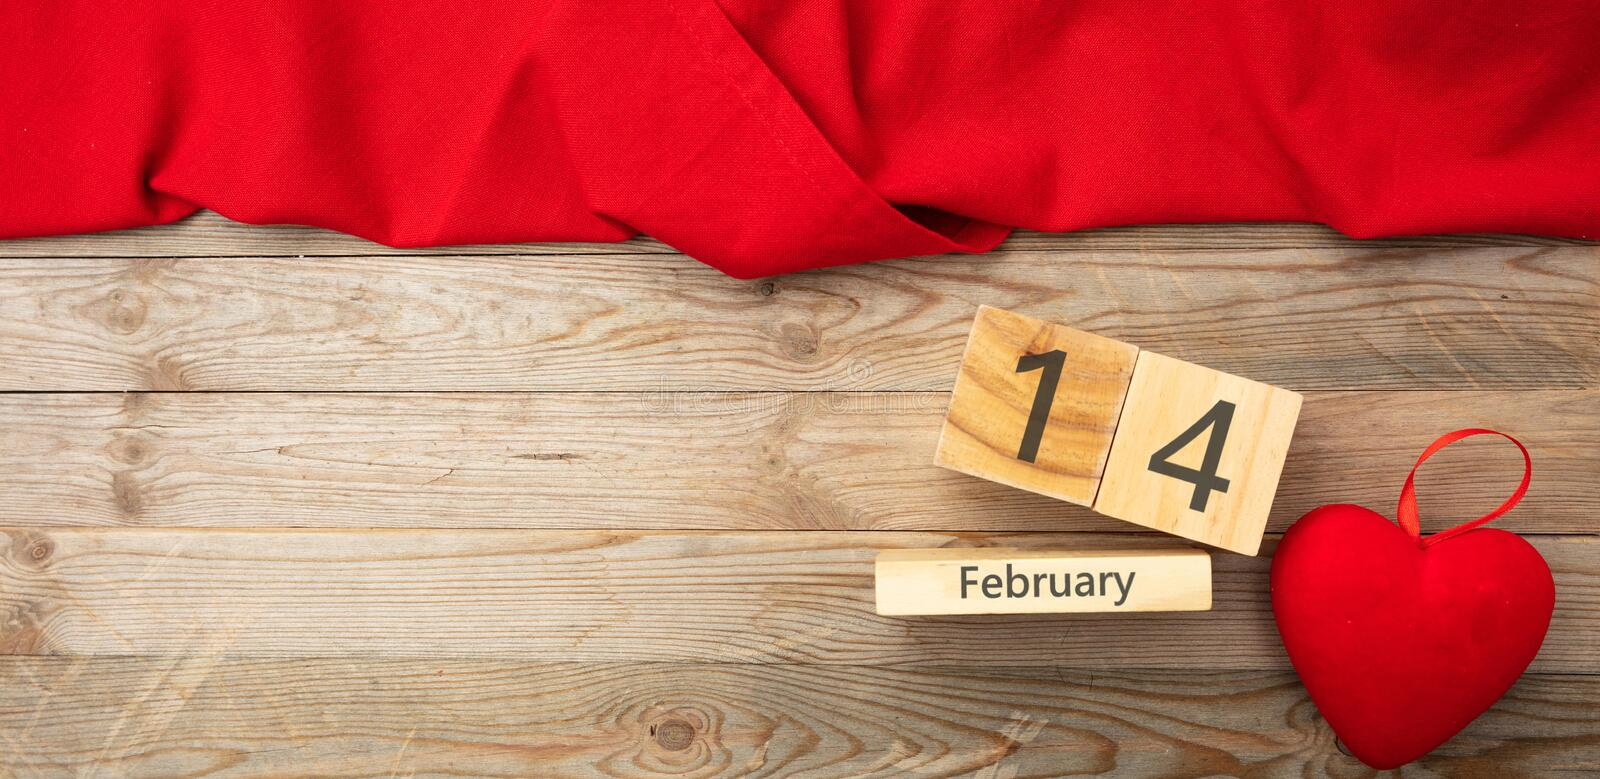 Valentines day. Top view of red heart and calendar date, wooden background stock image